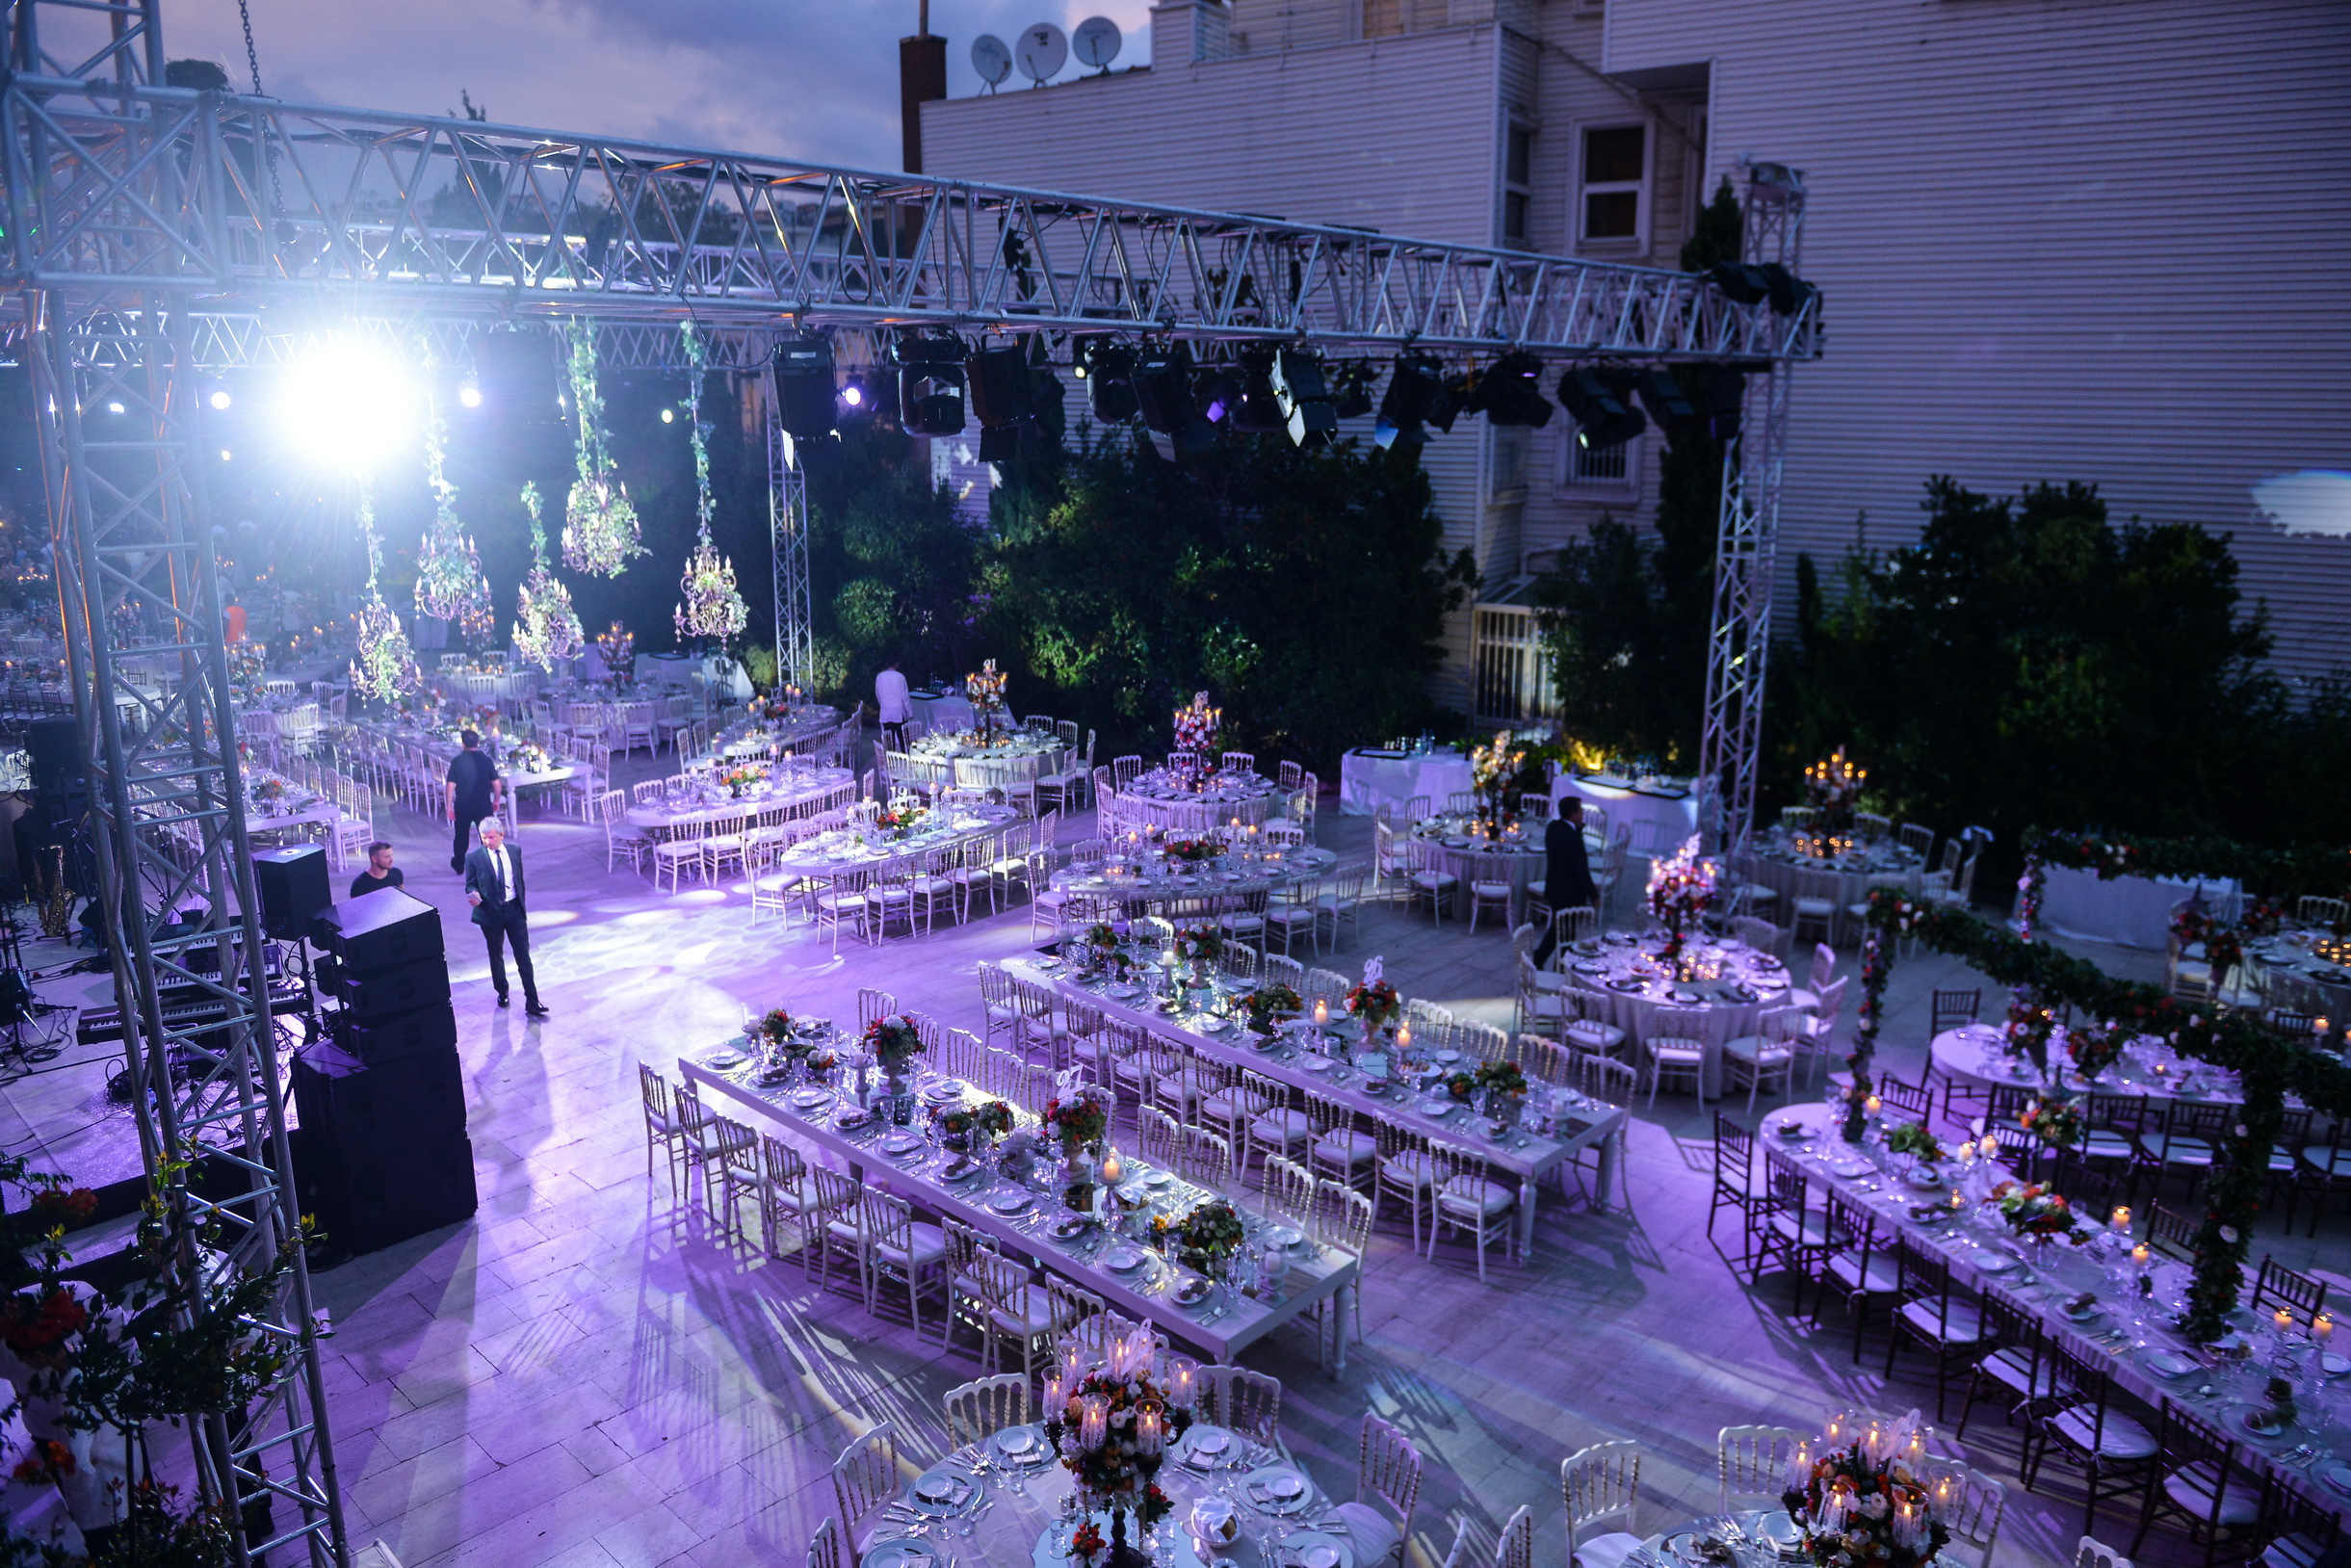 ESMA SULTAN MANSION İSTANBUL MUSLİM WEDDİNG